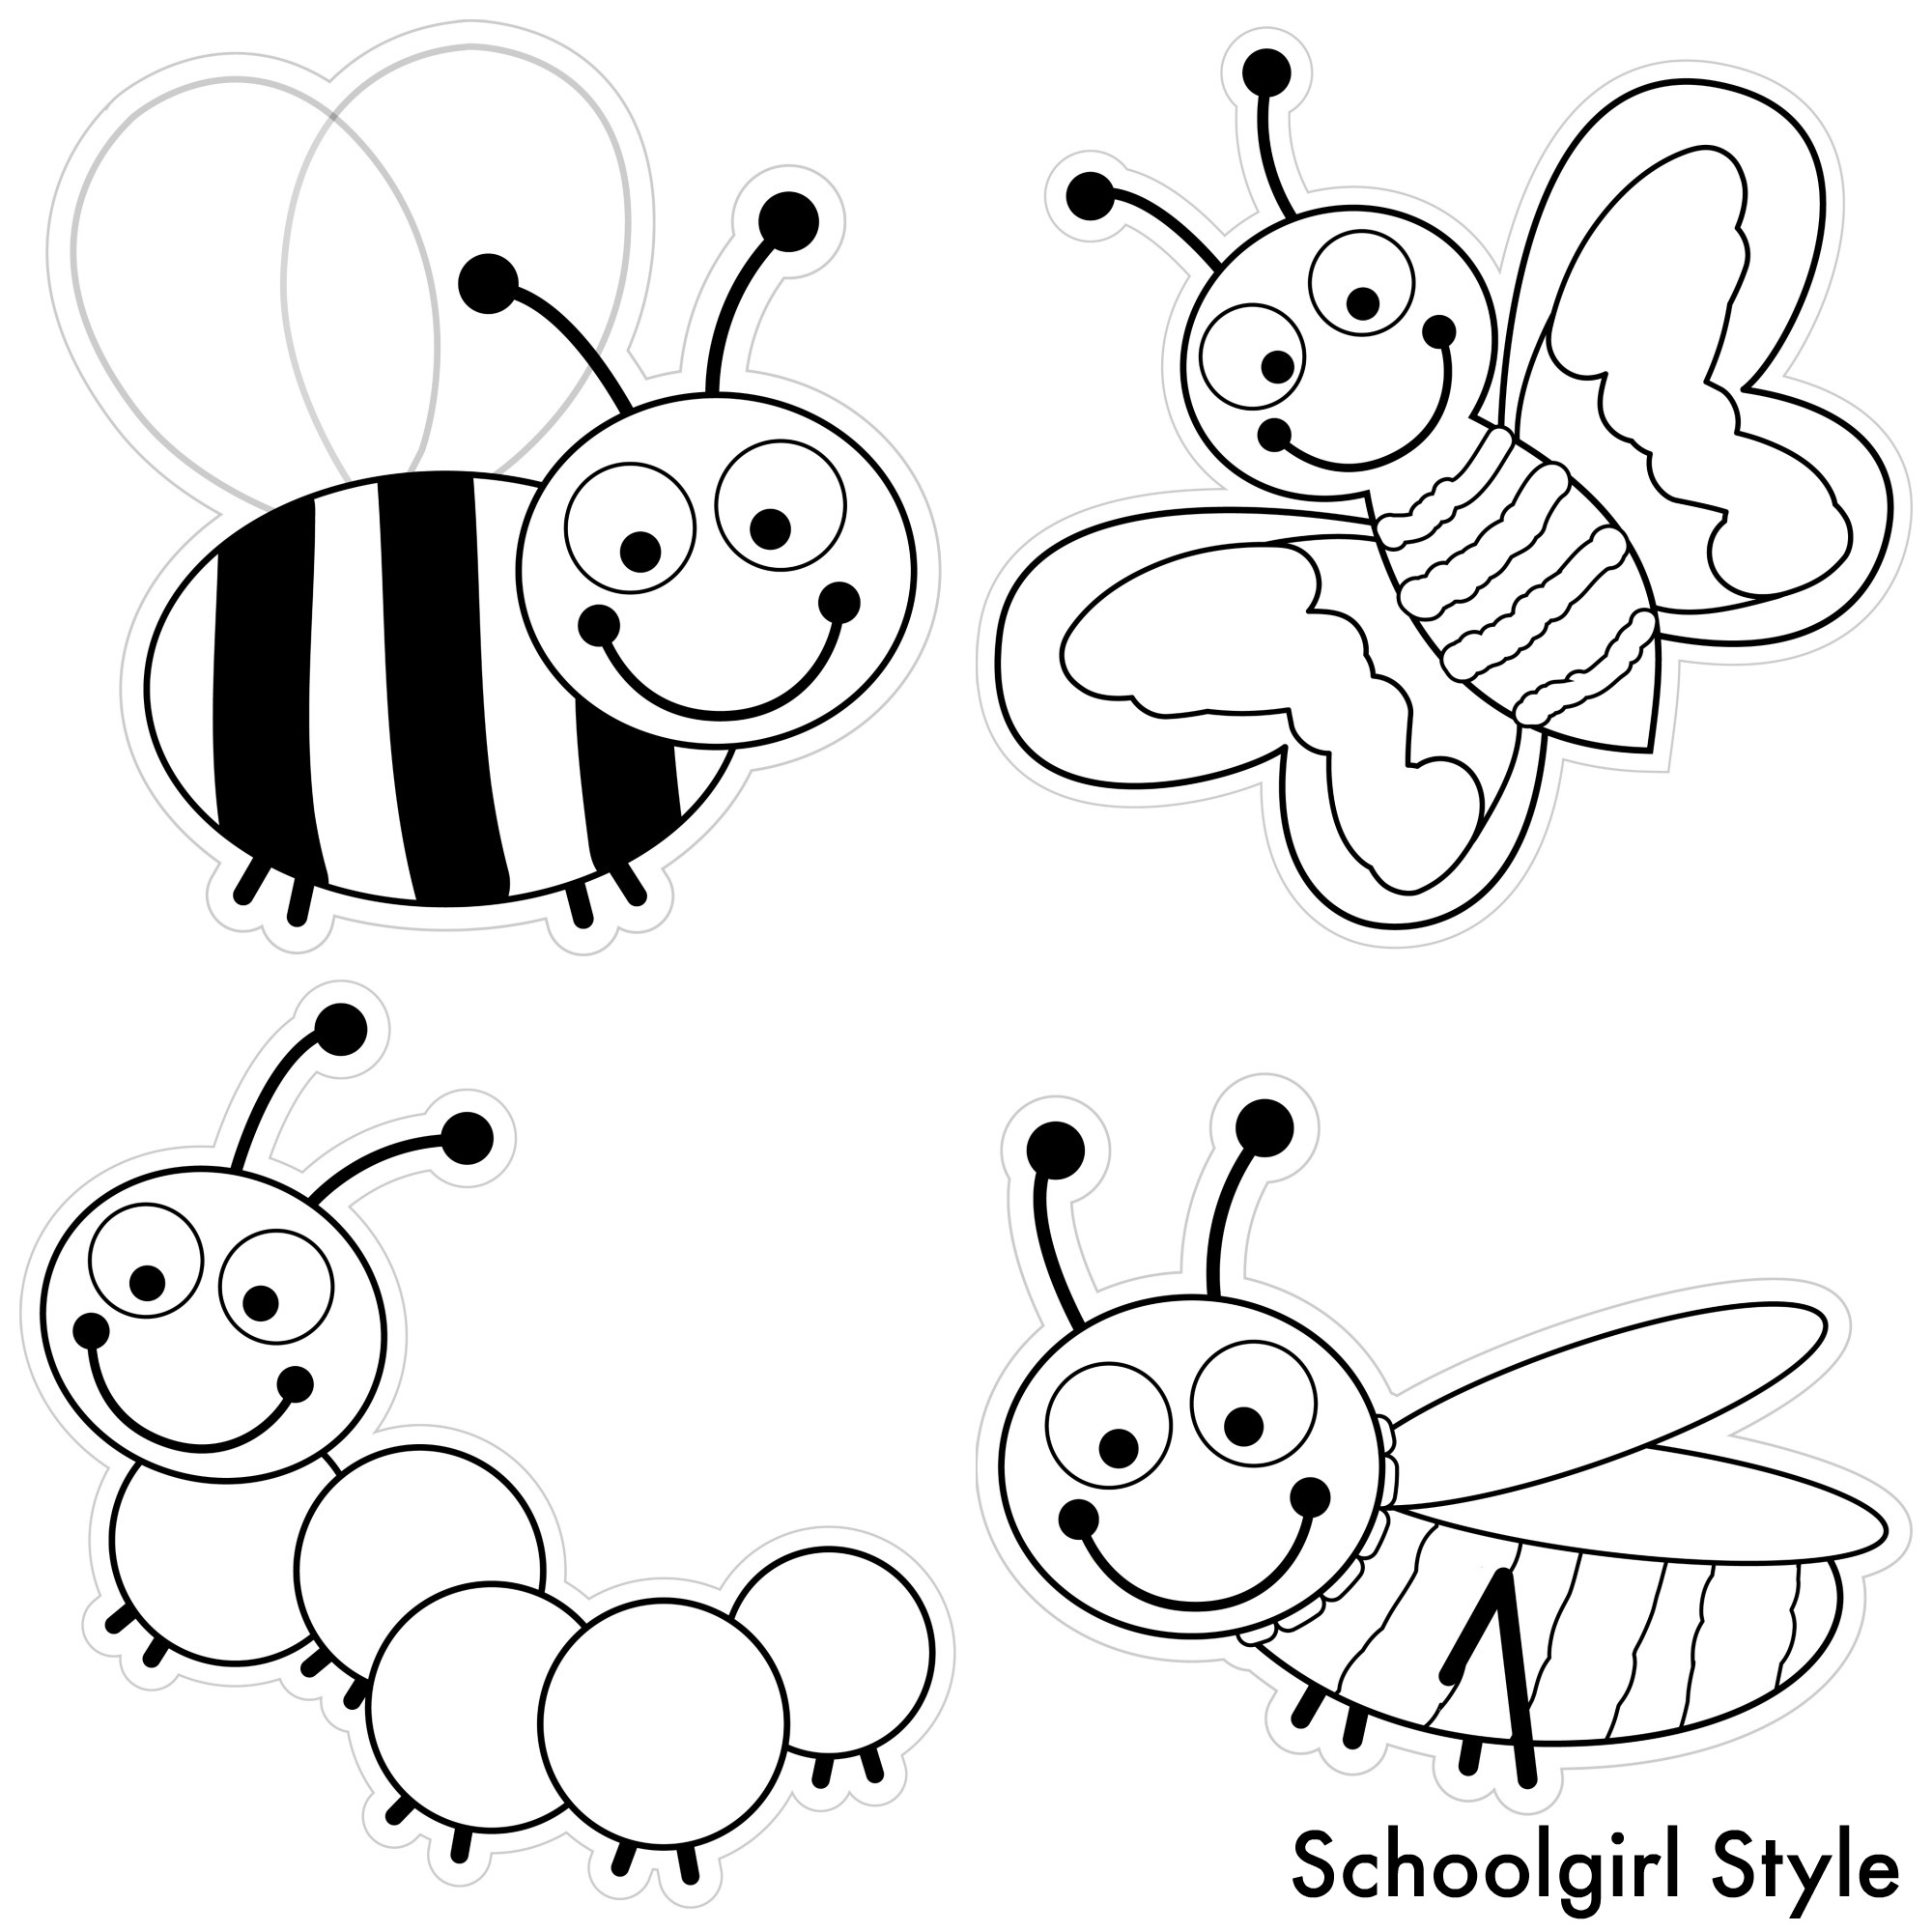 color my classroom bugs by schoolgirl style